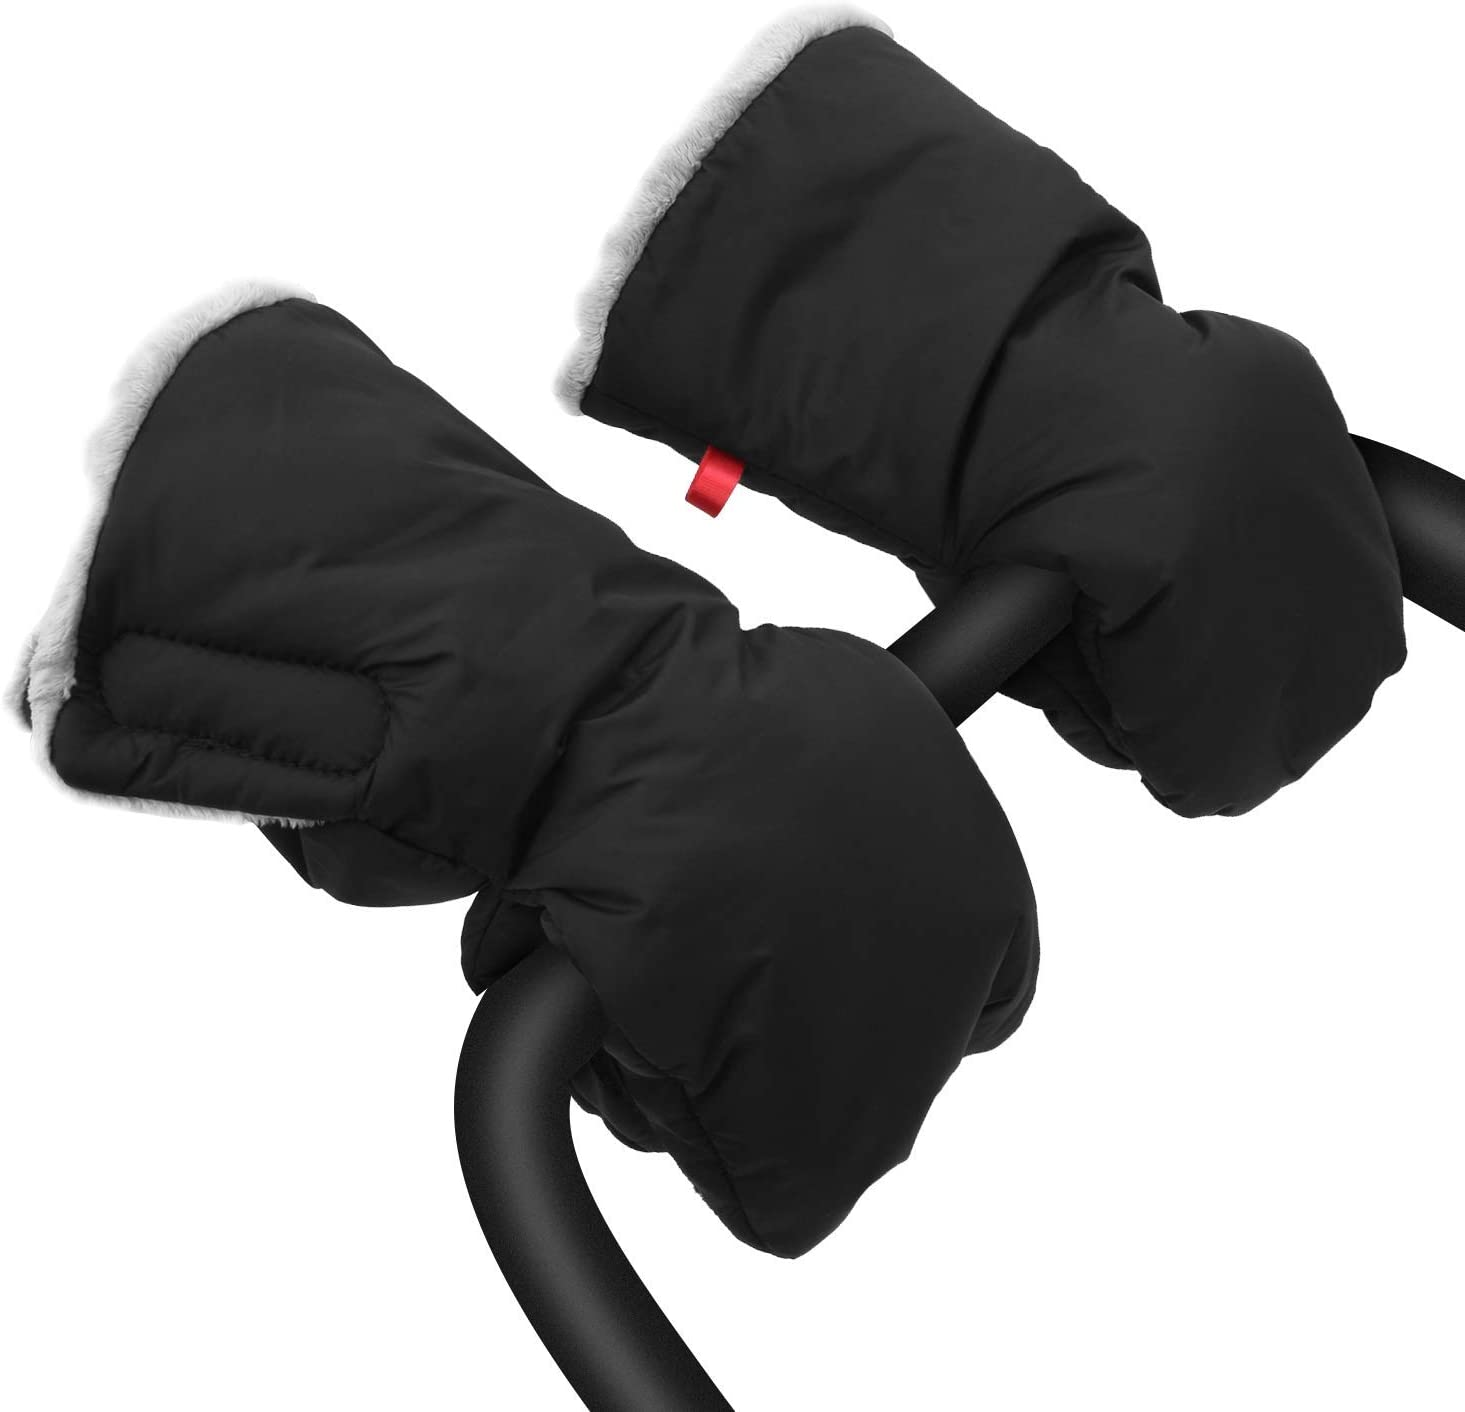 Extra Thick Stroller Hand Muff, Pushchair Gloves Warm Winter Baby Stroller Gloves Waterproof Anti-Freeze Carriage Hand Cover for Parents and Caregivers